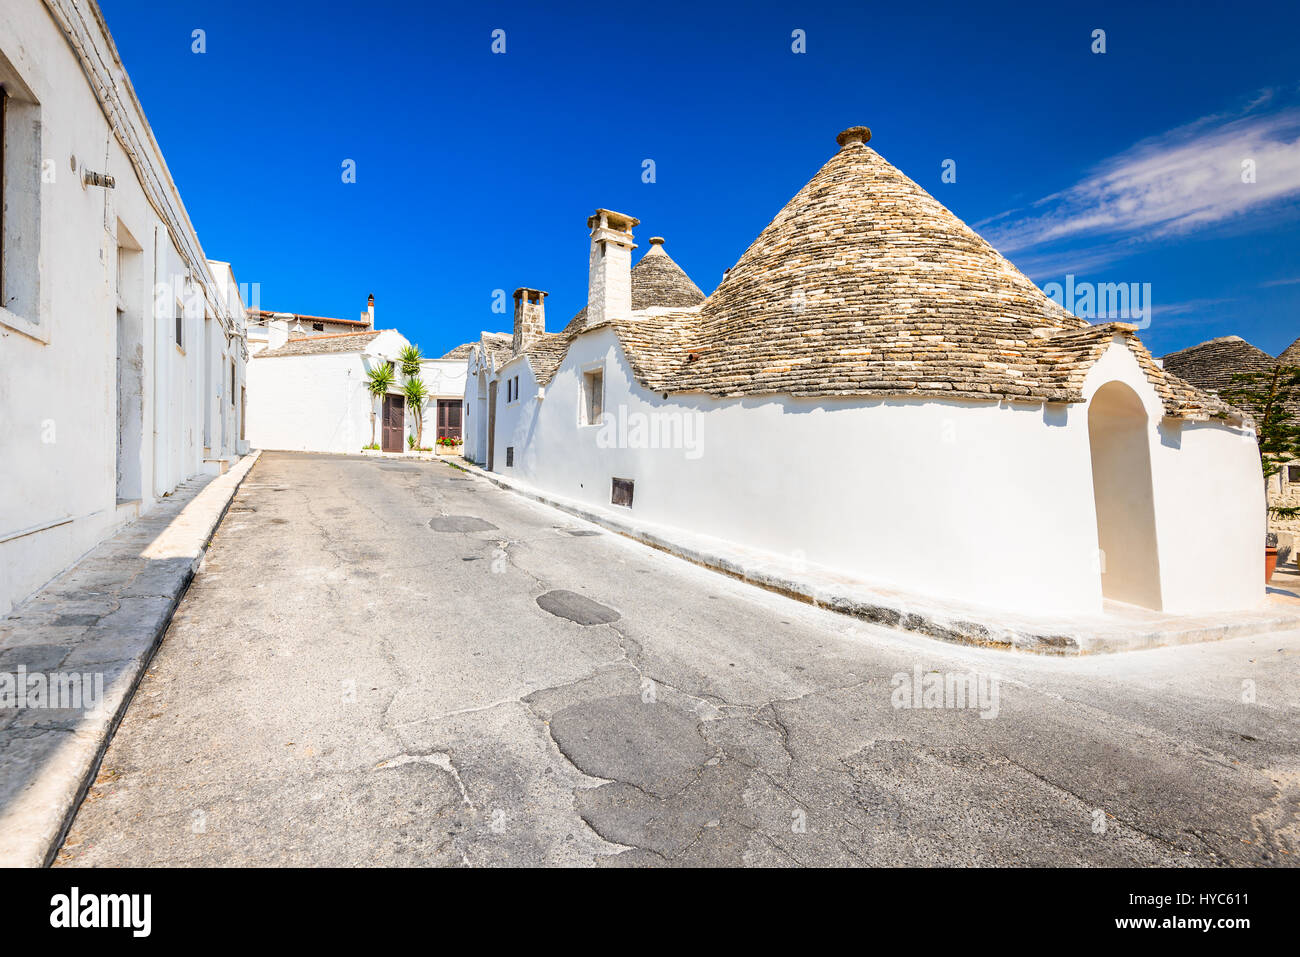 Unique Trulli houses with conical roofs. Trullo trulli : conical roofs - memphite.com